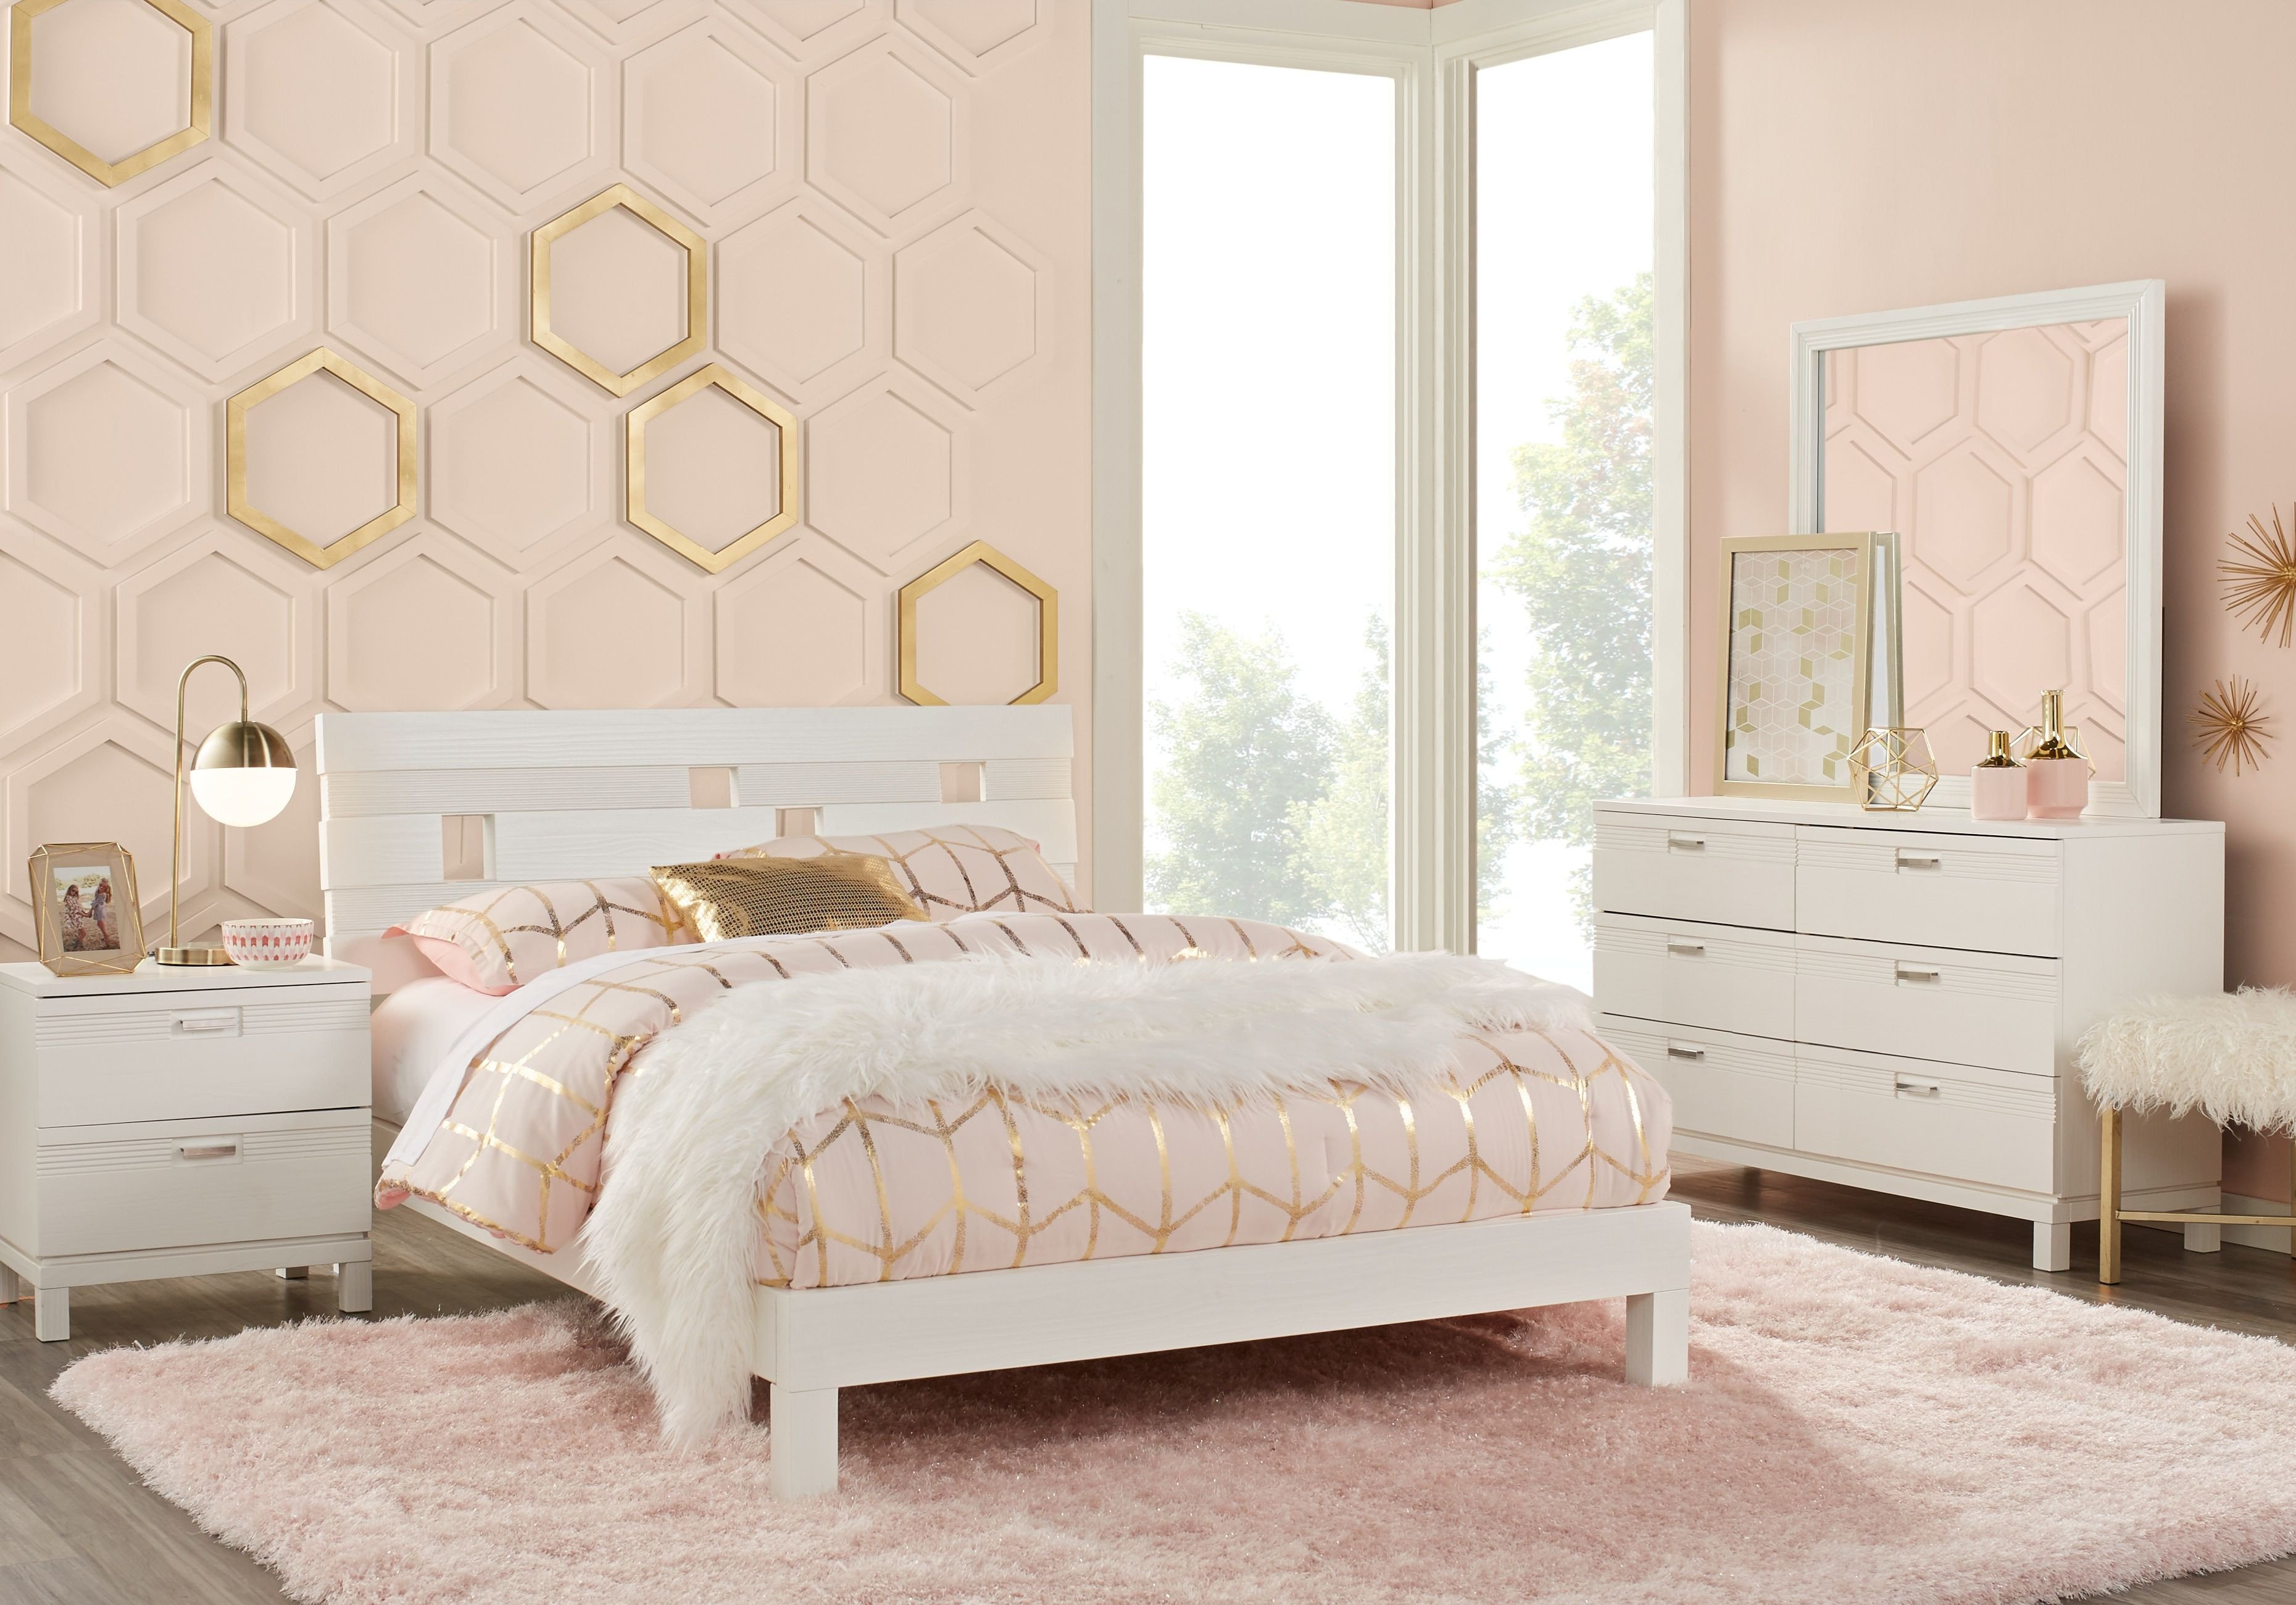 Teen Girl Bedroom Set Luxury Pin On Bedroom